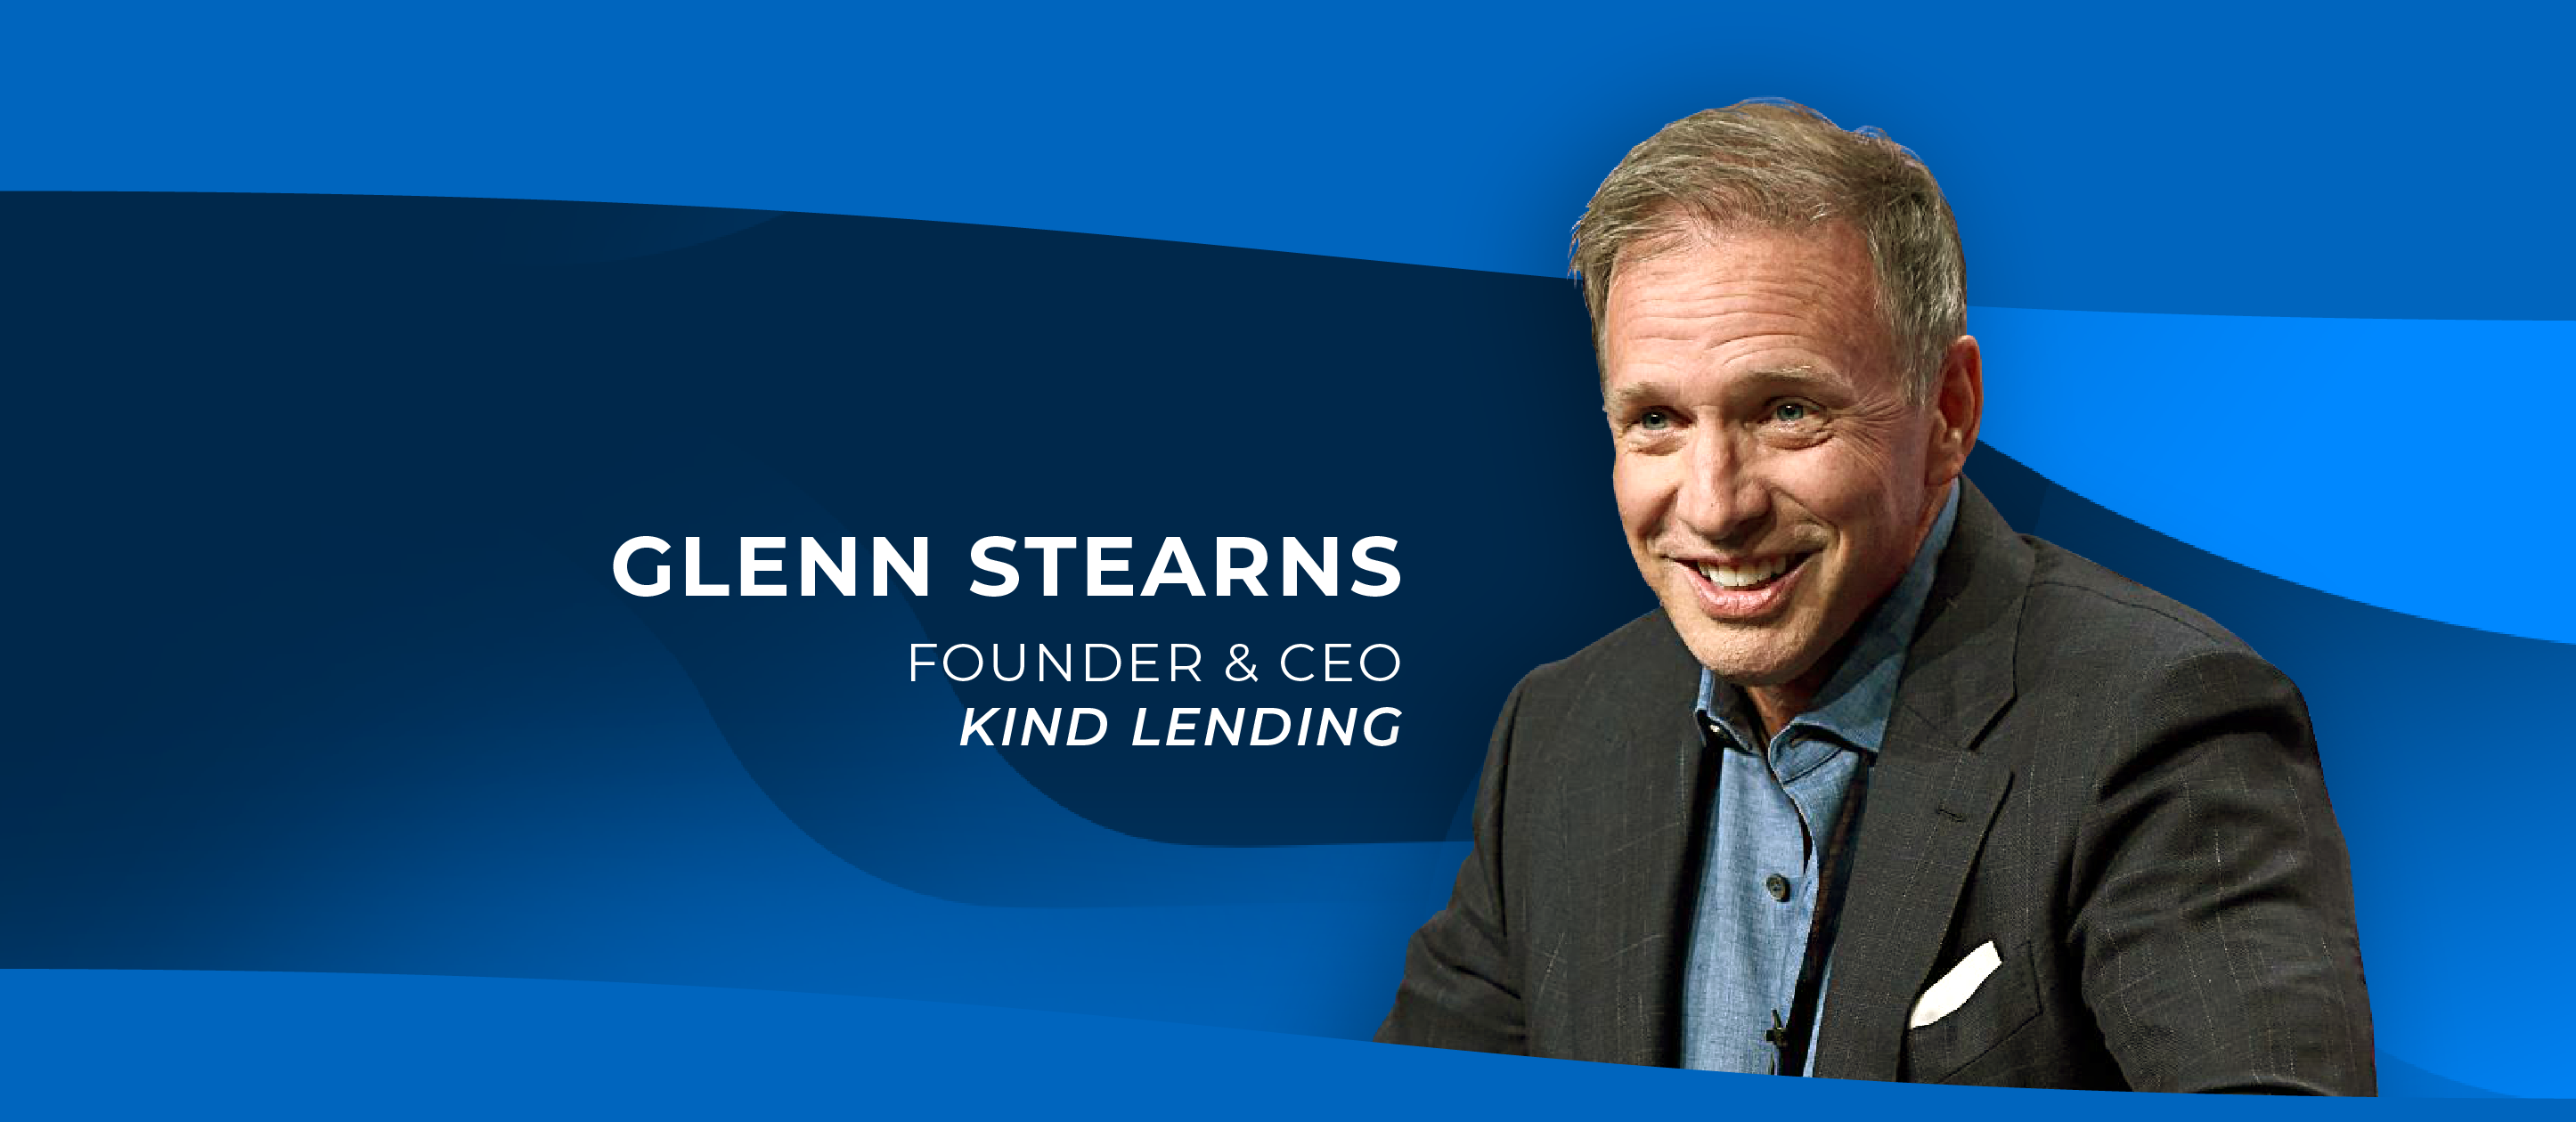 Glenn Stearns, Founder & CEO of Kind Lending